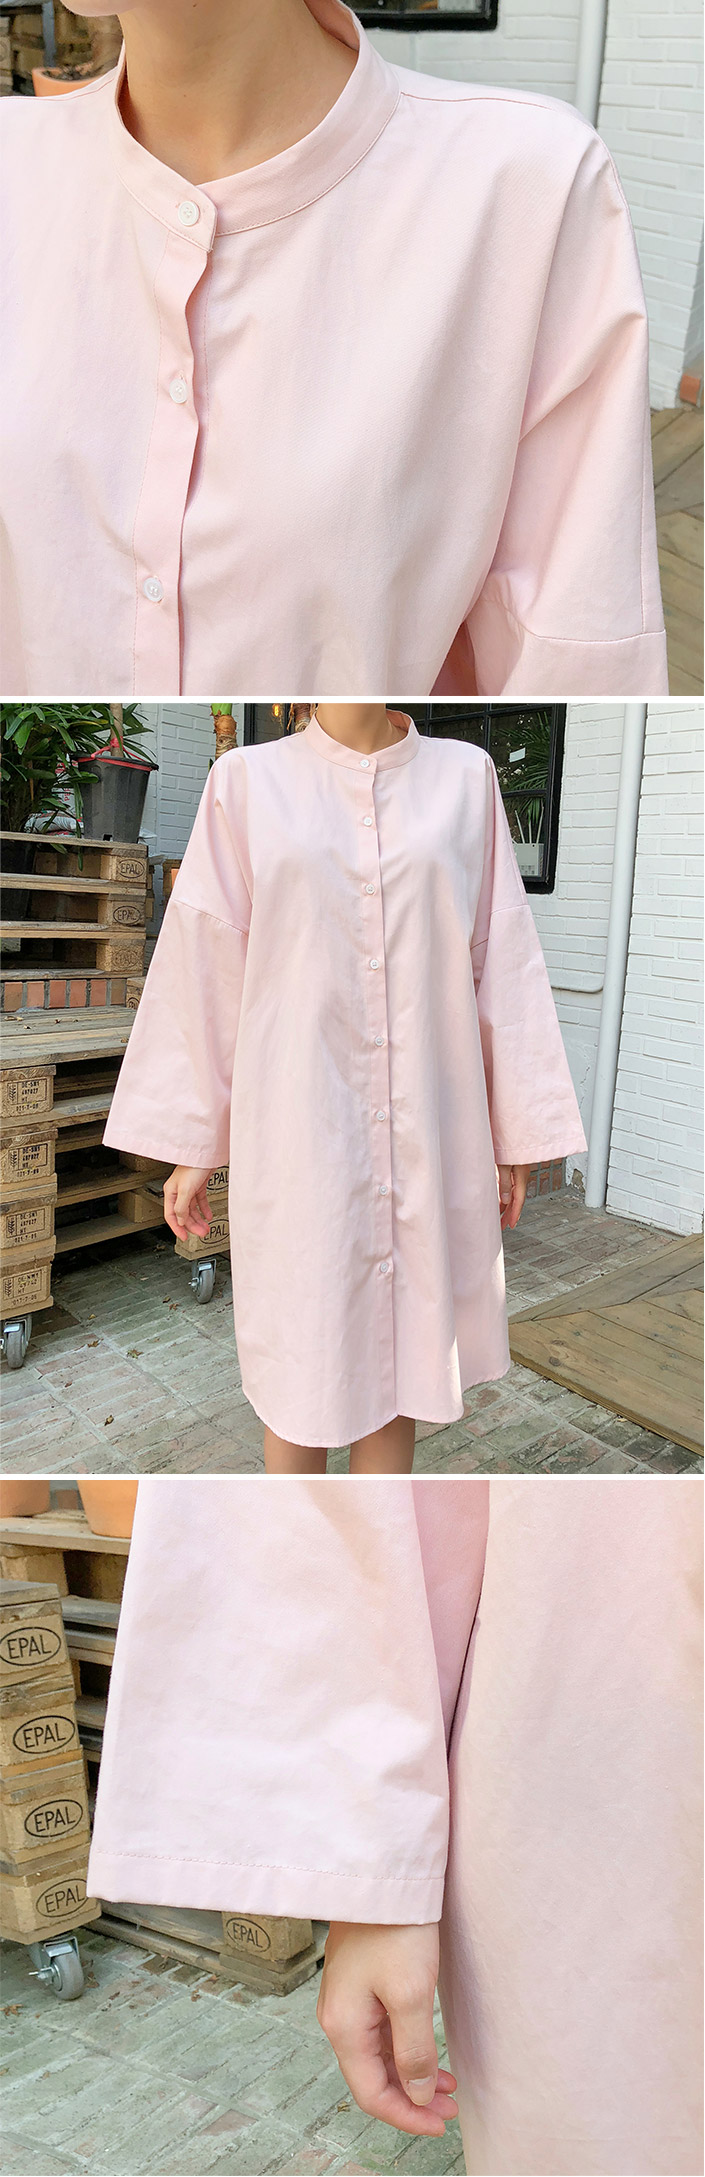 //cdn.nhanh.vn/cdn/store/29770/psCT/20181003/9325619/_CHUU_MADE__Cotton_Long_Shirt_(40).jpg